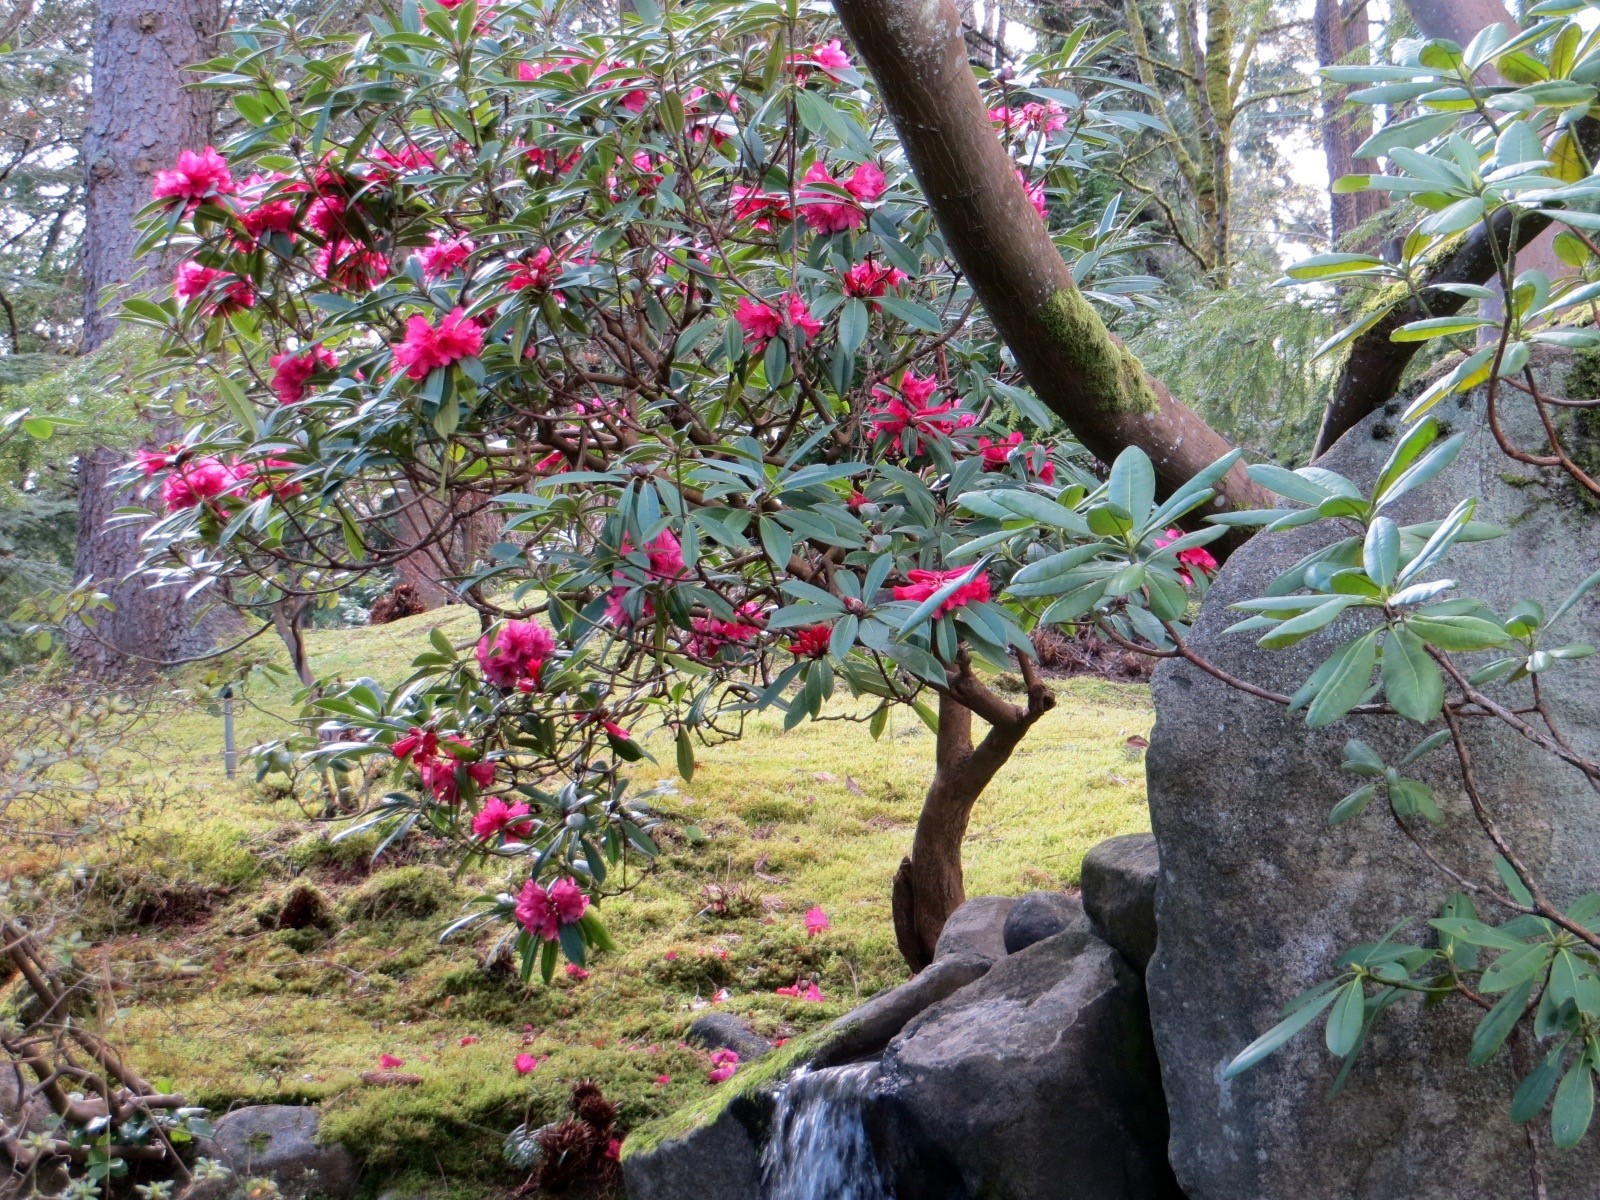 In Bloom The Early Blooming Rhododendron Behind The Waterfall